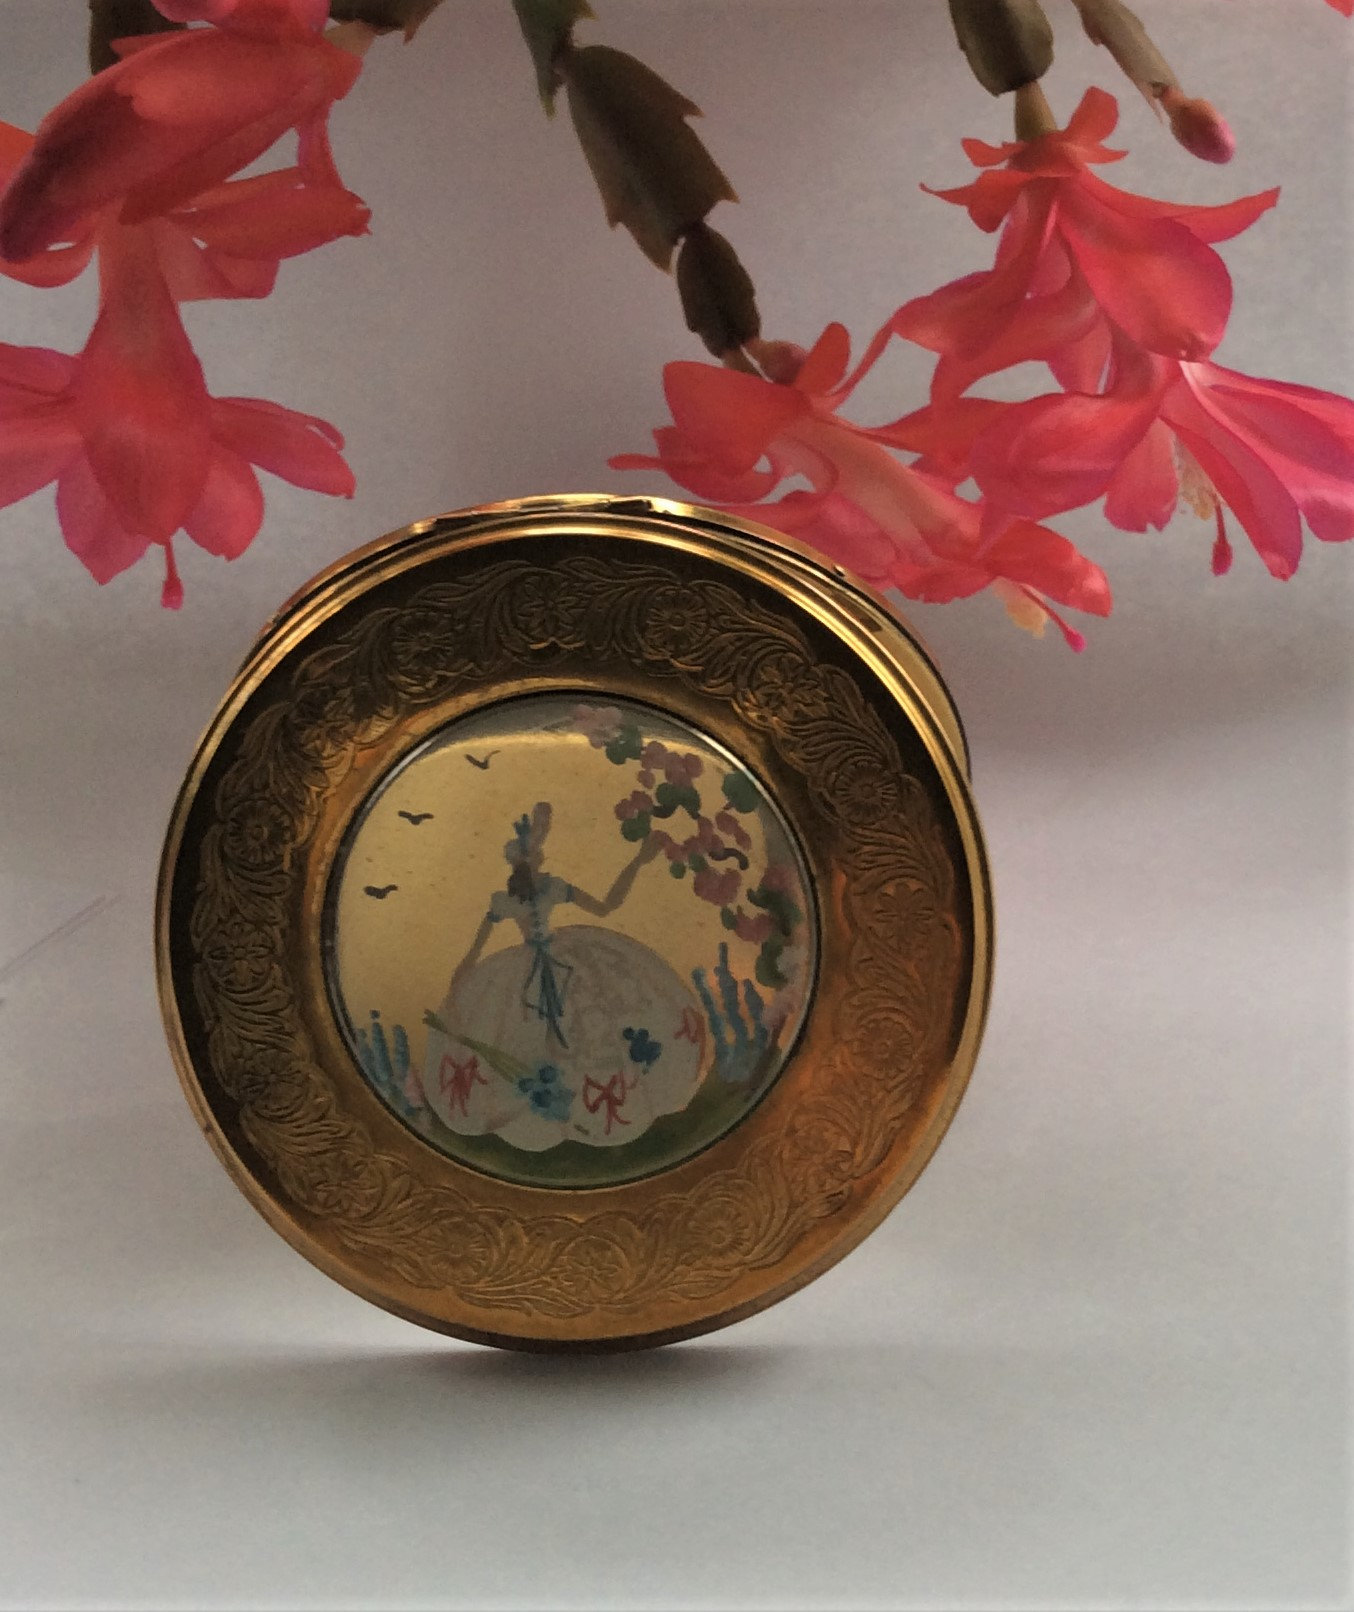 Very Pretty Vintage Mid Century Handpainted Goldtone Metal Powder Compact Size: 8.2cms in diameter